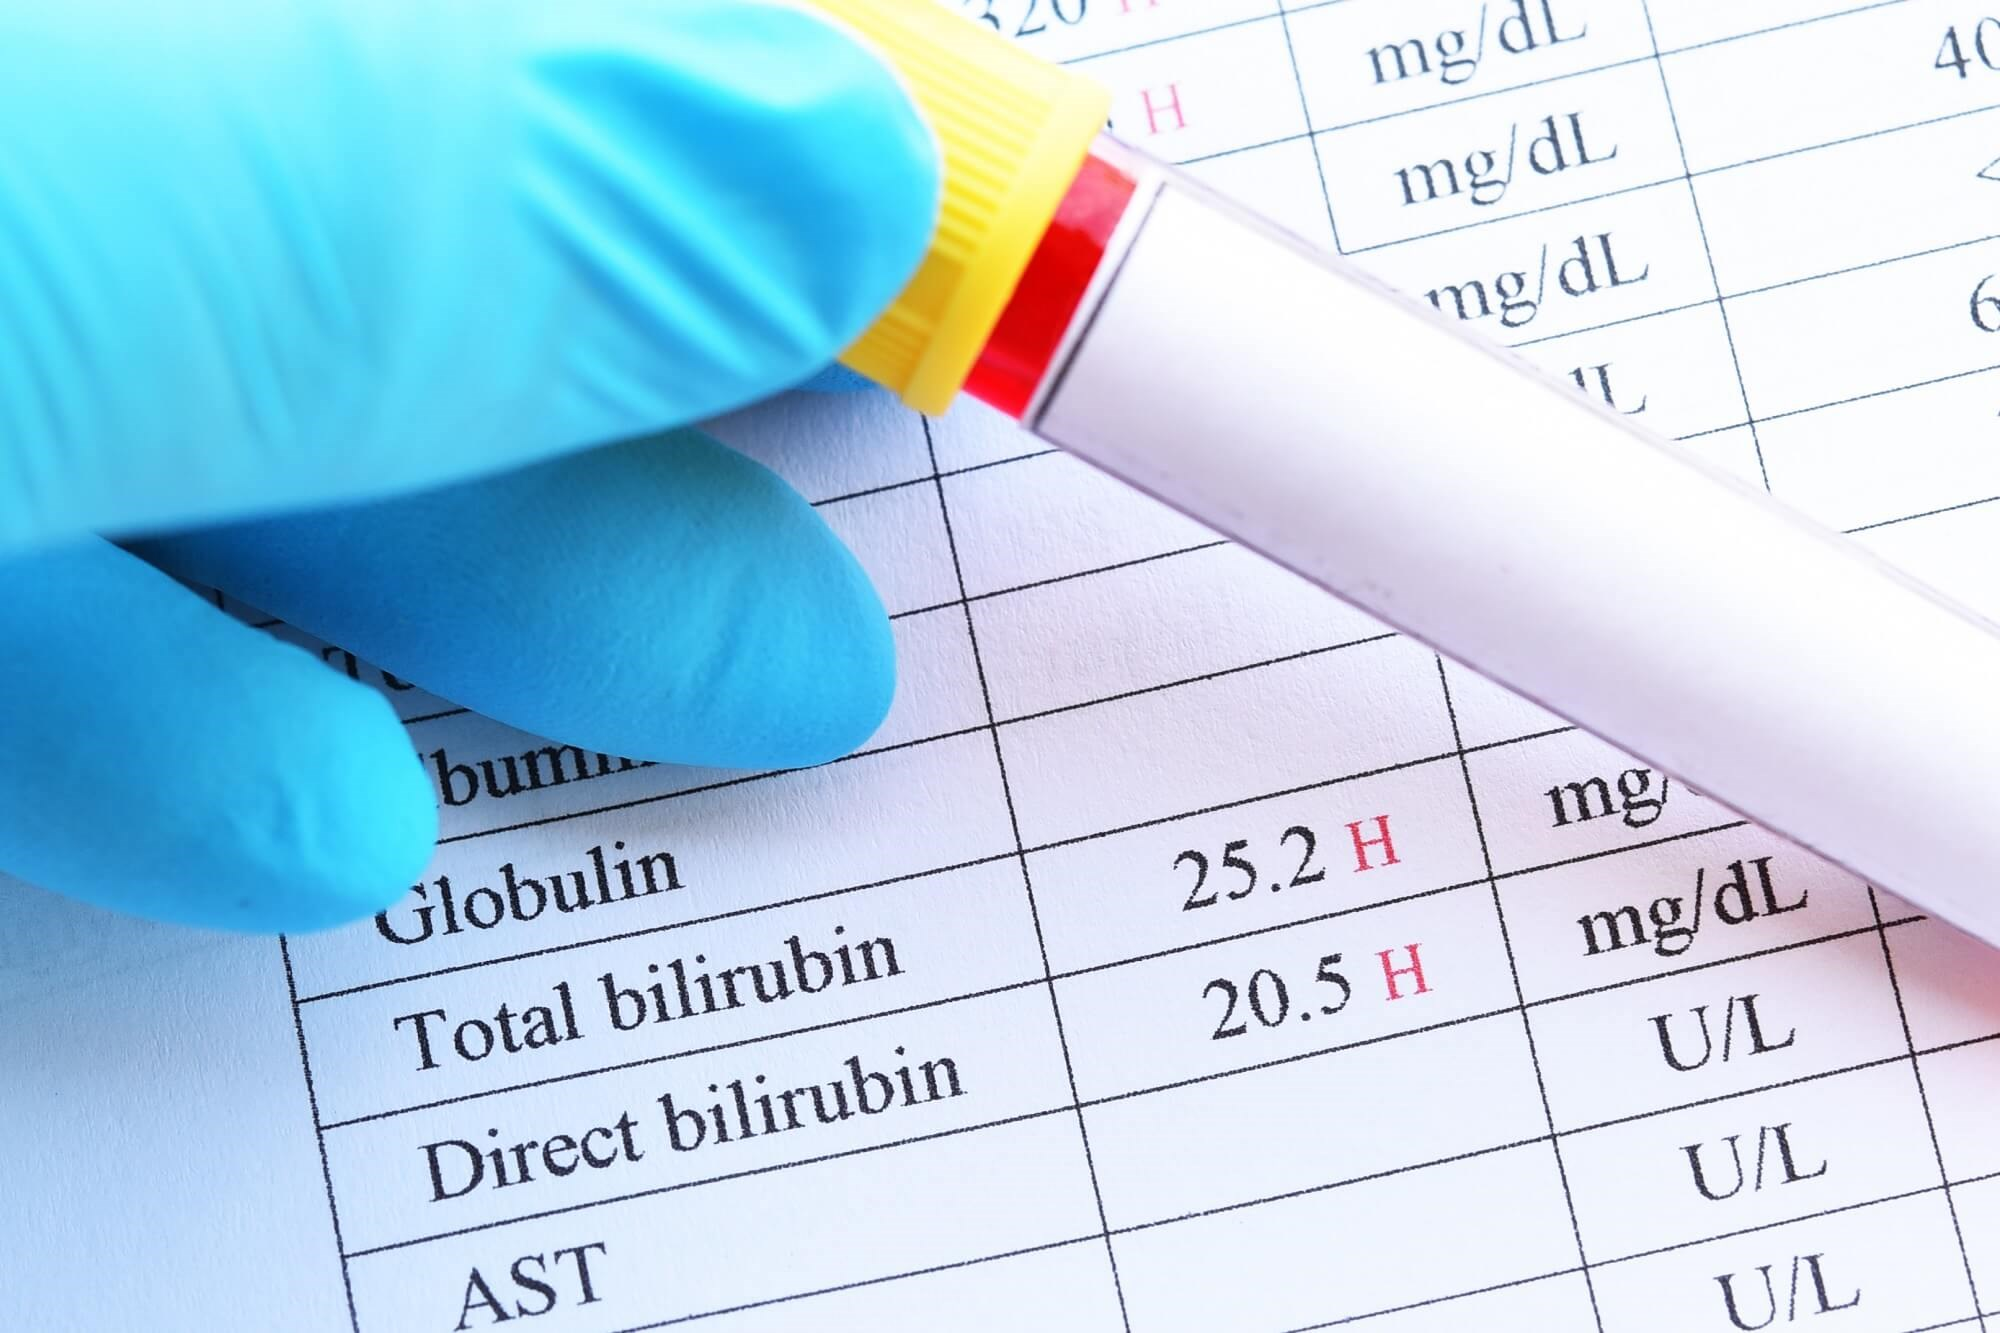 Asthma Risk in Infants Predicted by Total Serum Bilirubin